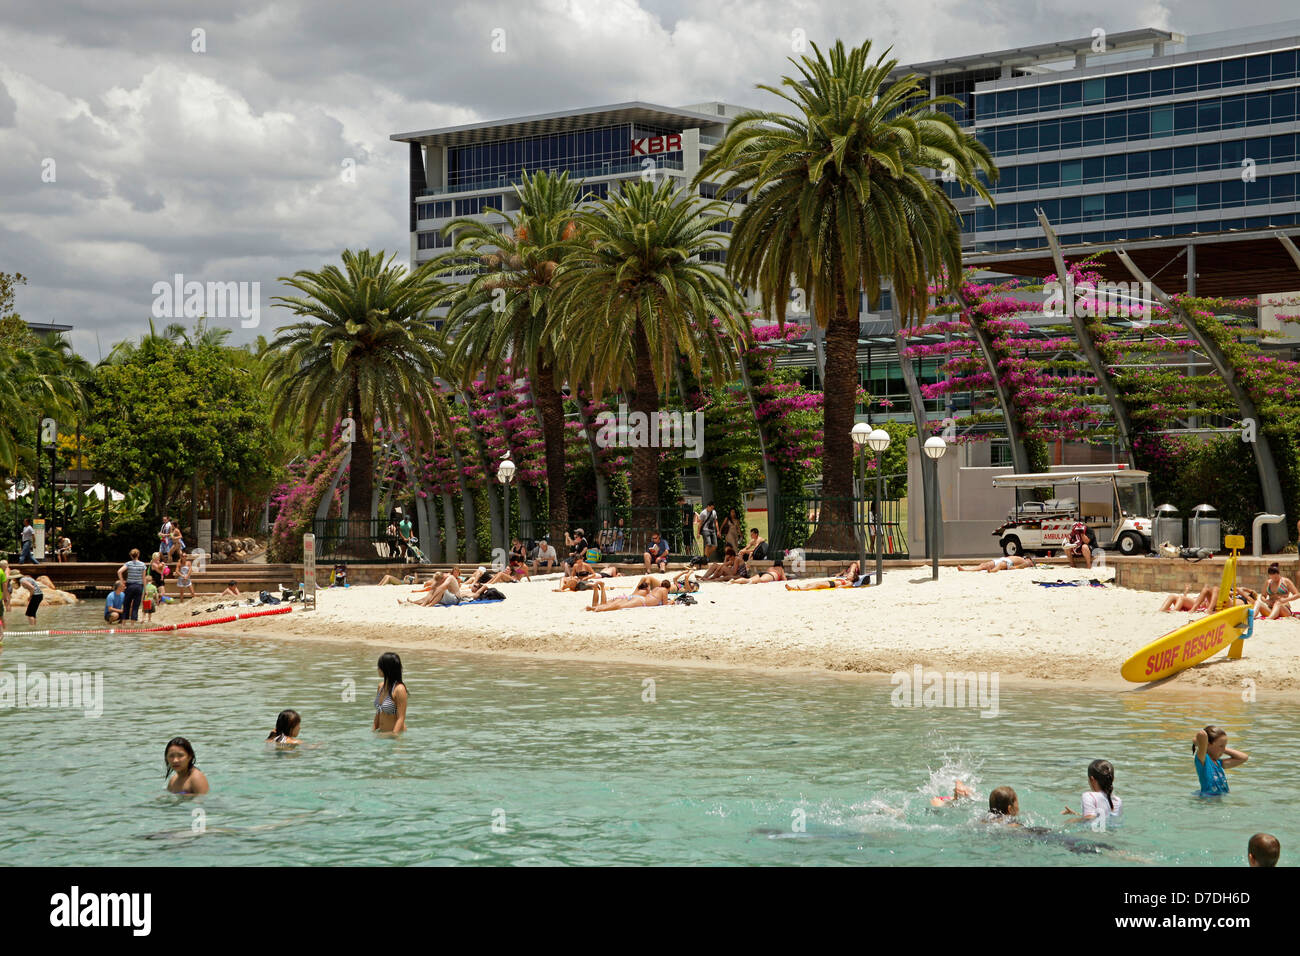 man-made beach and pool Streets Beach on South Bank in Brisbane, Queensland, Australien - Stock Image